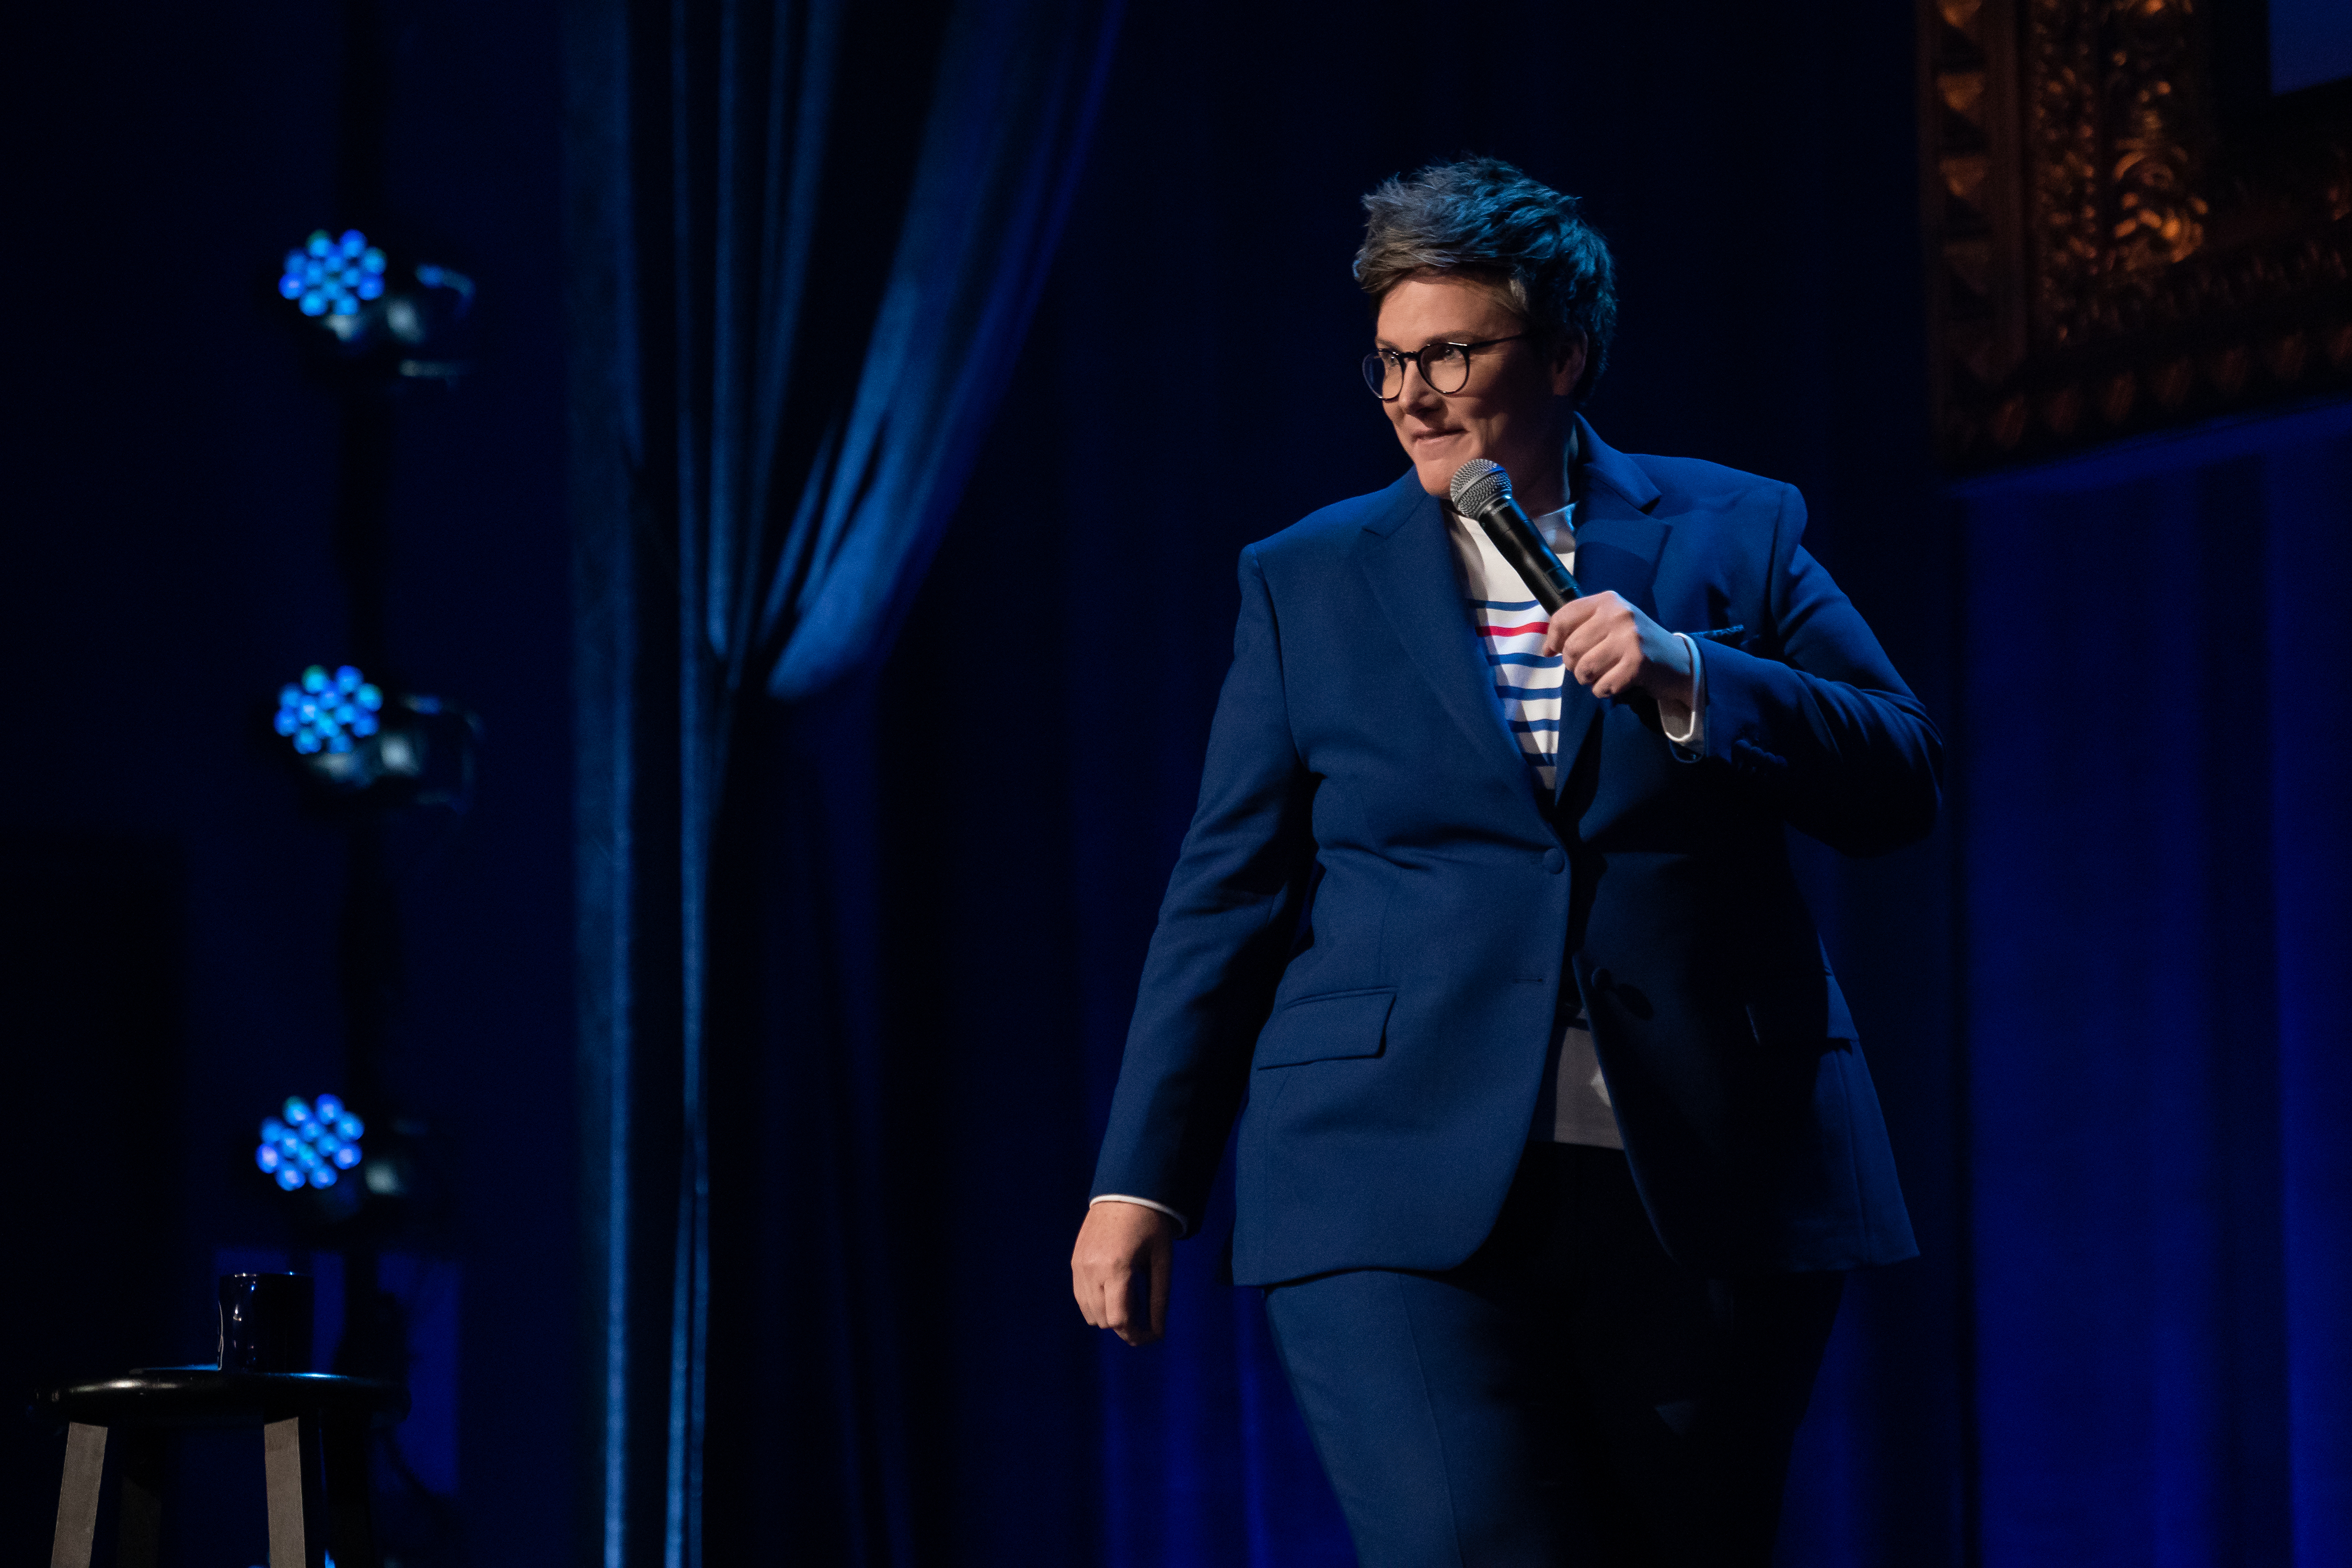 Hannah Gadsby feels the pressure of her success in 'Nanette' follow-up 'Douglas'